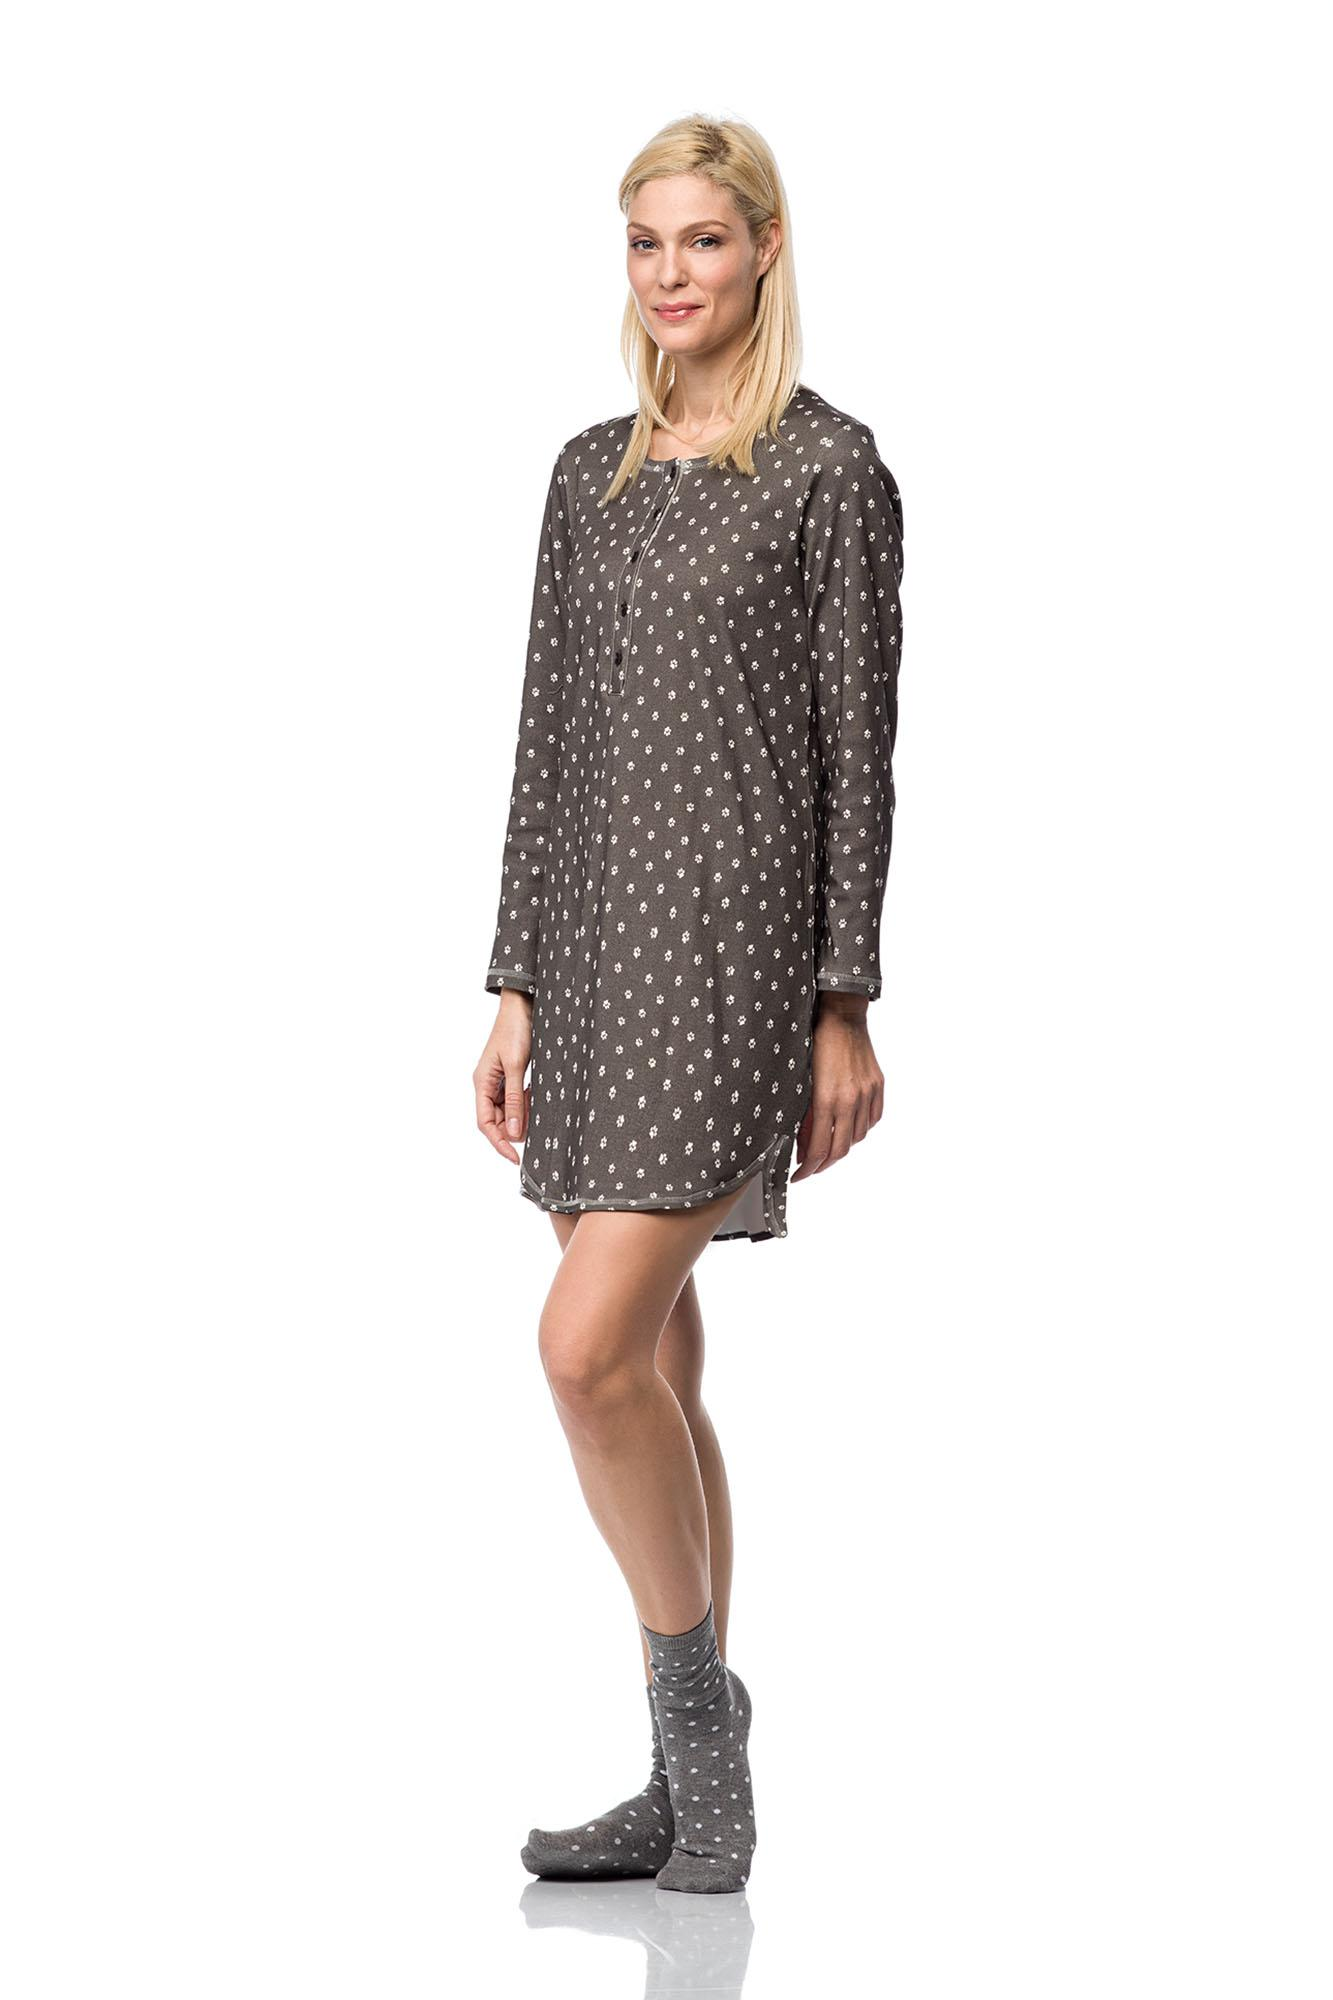 Women's Print Nursing Nightgown